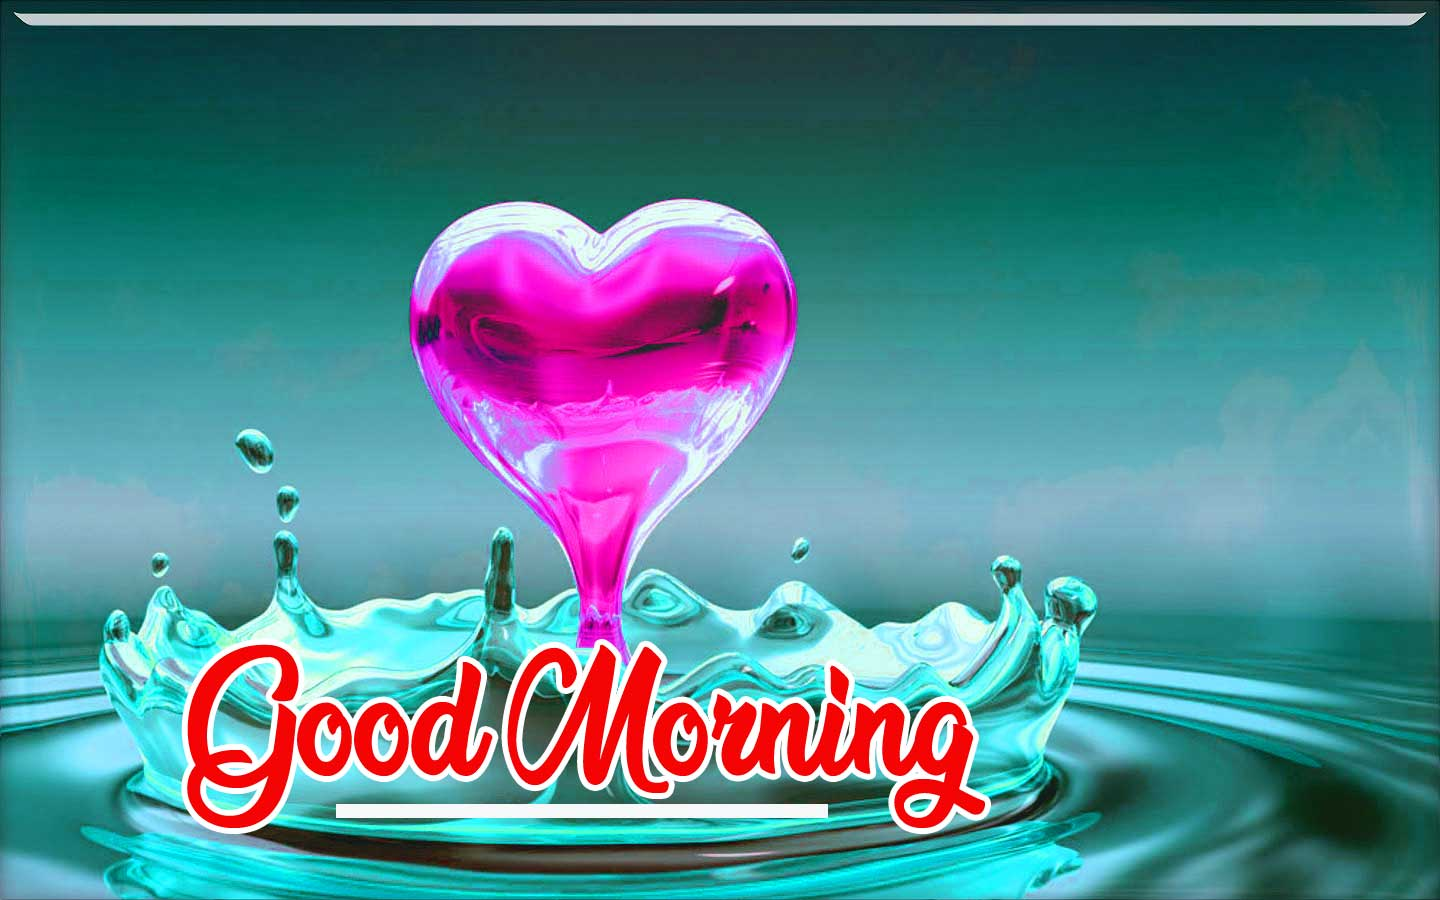 Dil Good Morning Wishes Images Wallpaper Pics Free Download